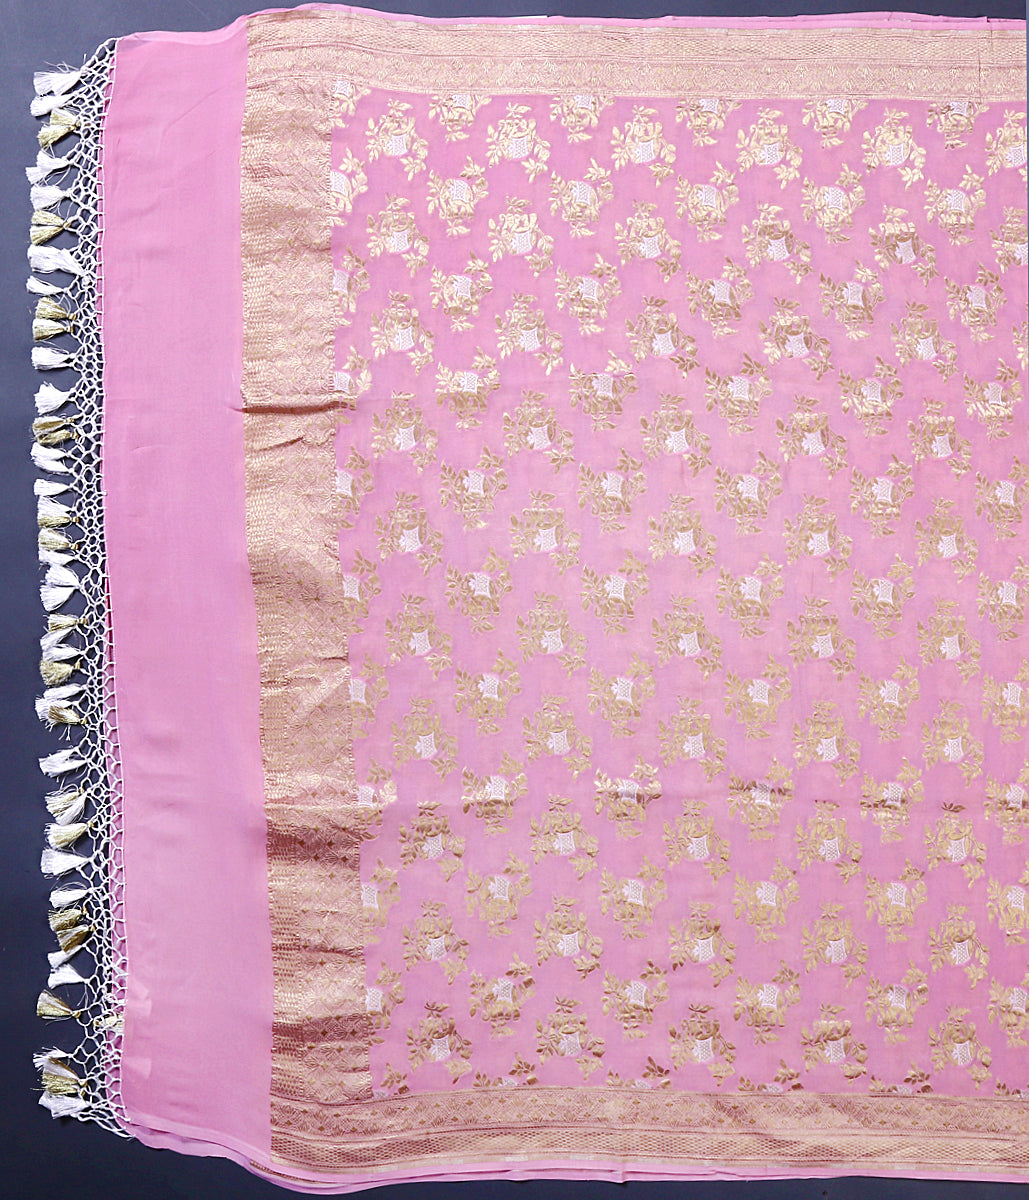 Light Pink Banarasi georgette dupatta with gold and silver zari elephant motifs